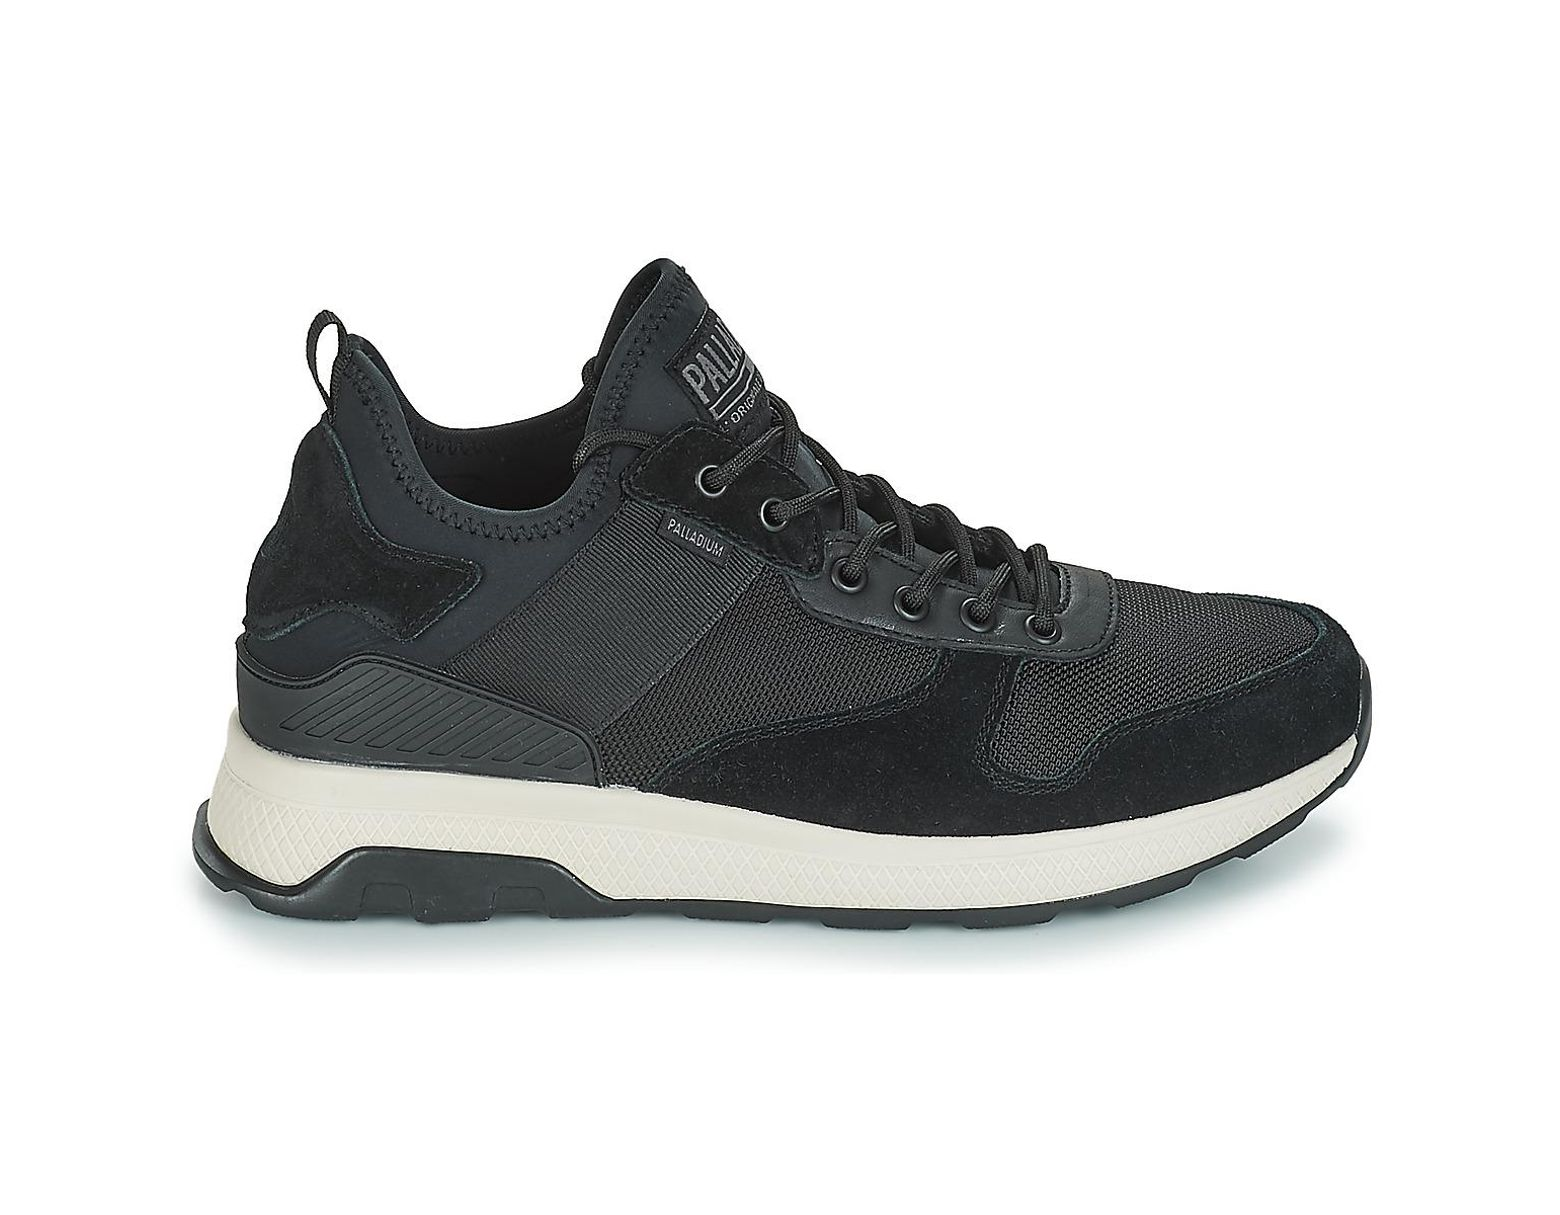 44f64600fdf Palladium Axeon Army Runner Shoes (trainers) in Black for Men - Lyst